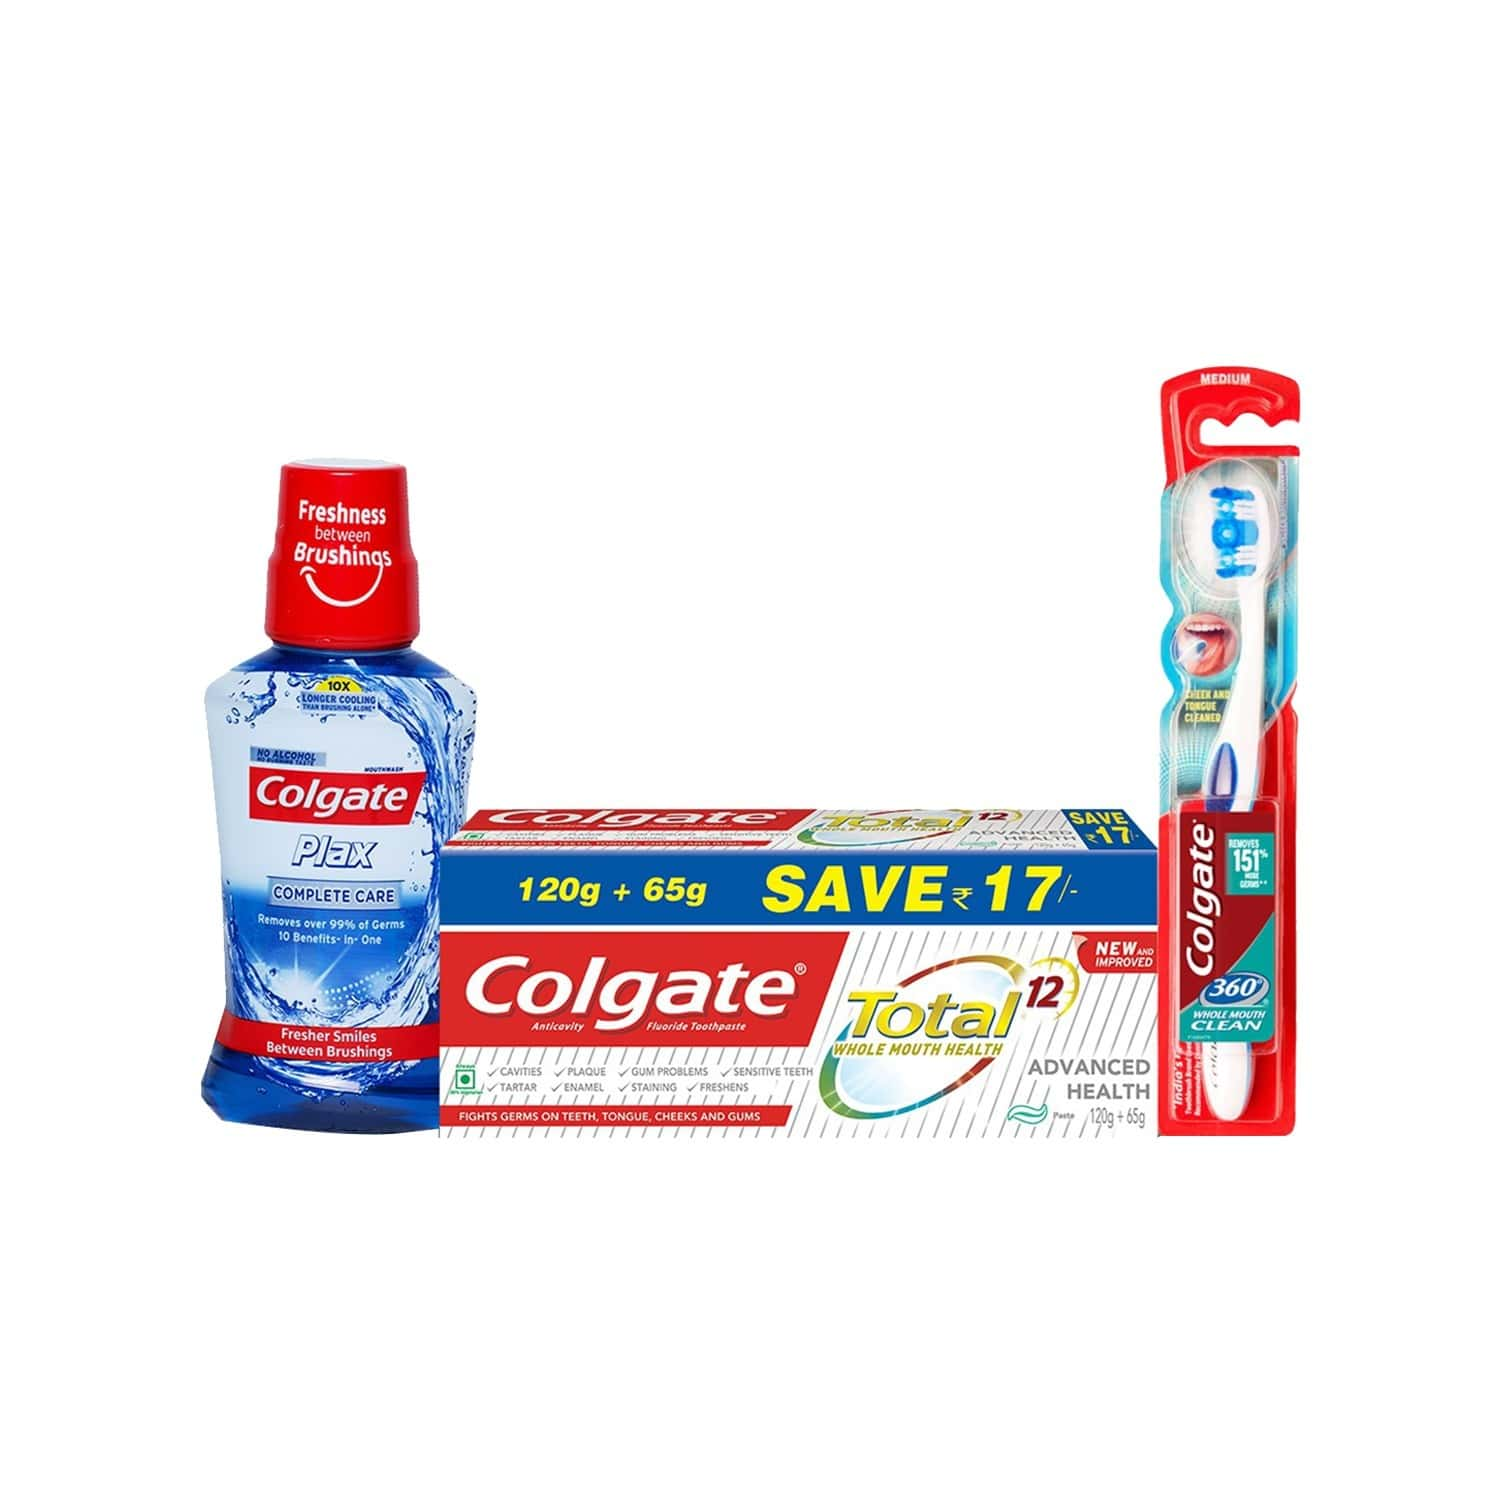 Colgate Toothpaste-total Advance Health - 185 G - Advanced Protection